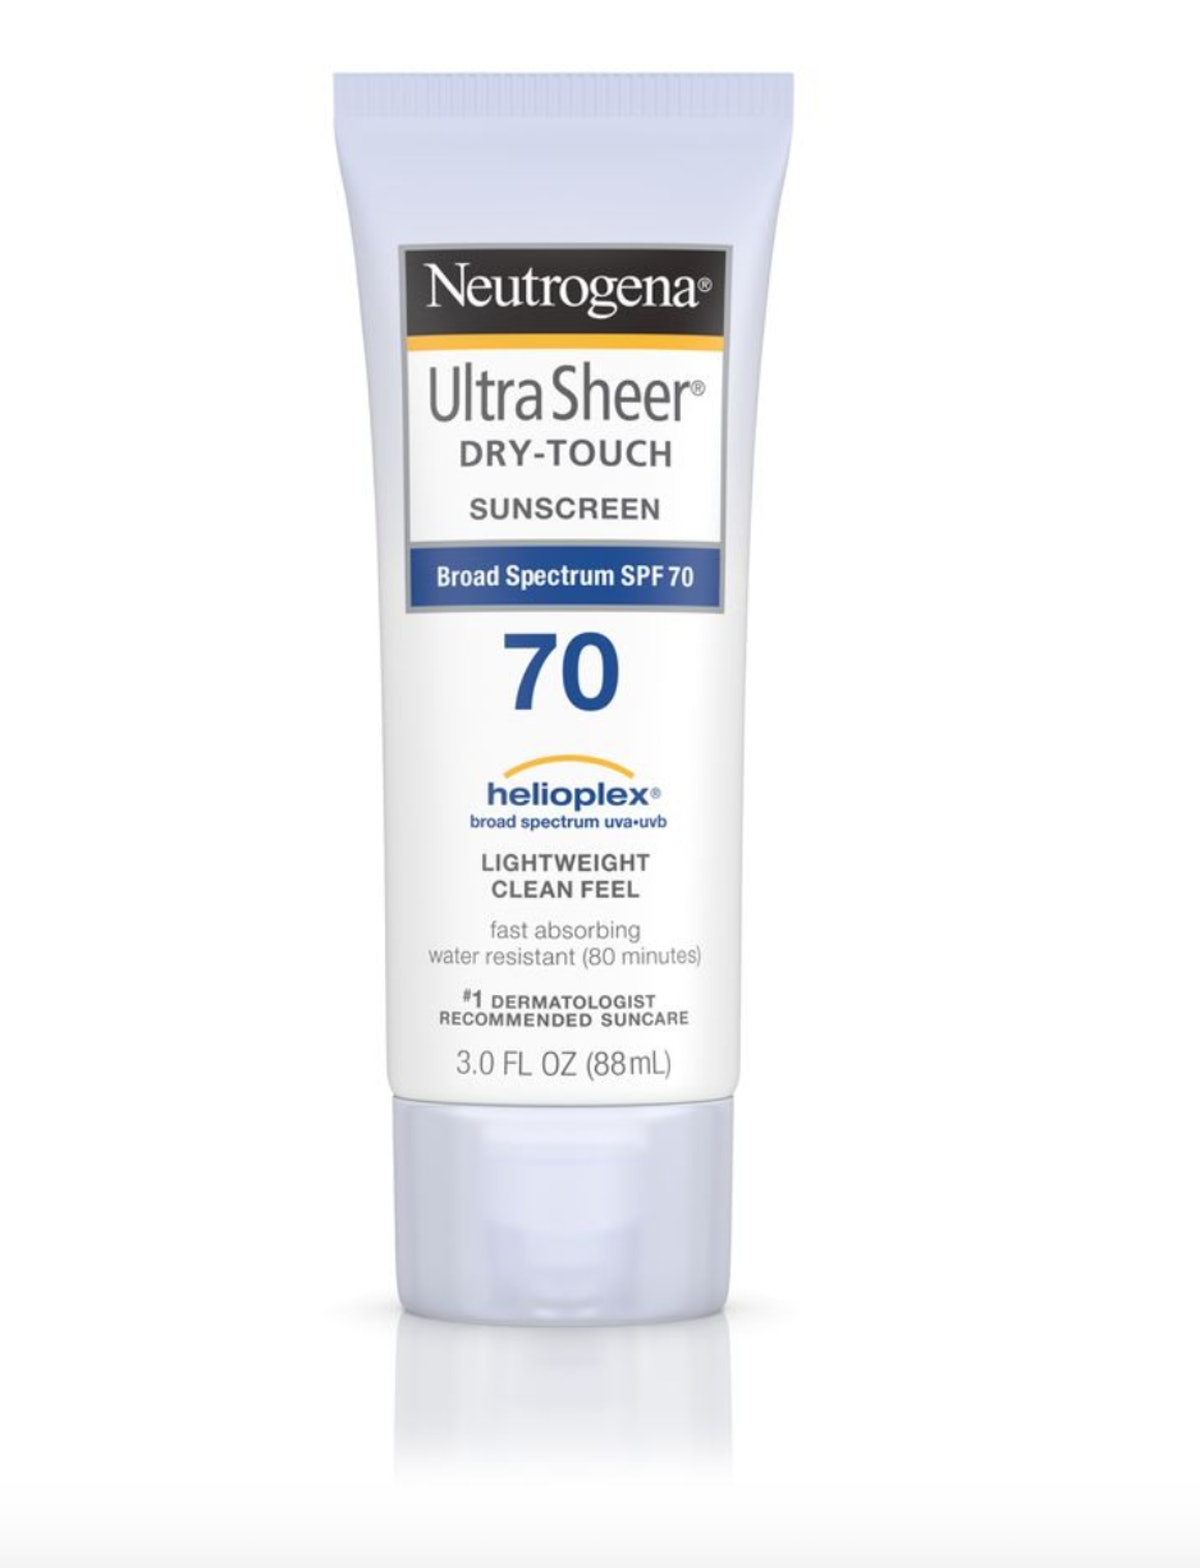 Ultra Sheer Dry-Touch Sunscreen Broad Spectrum SPF 70